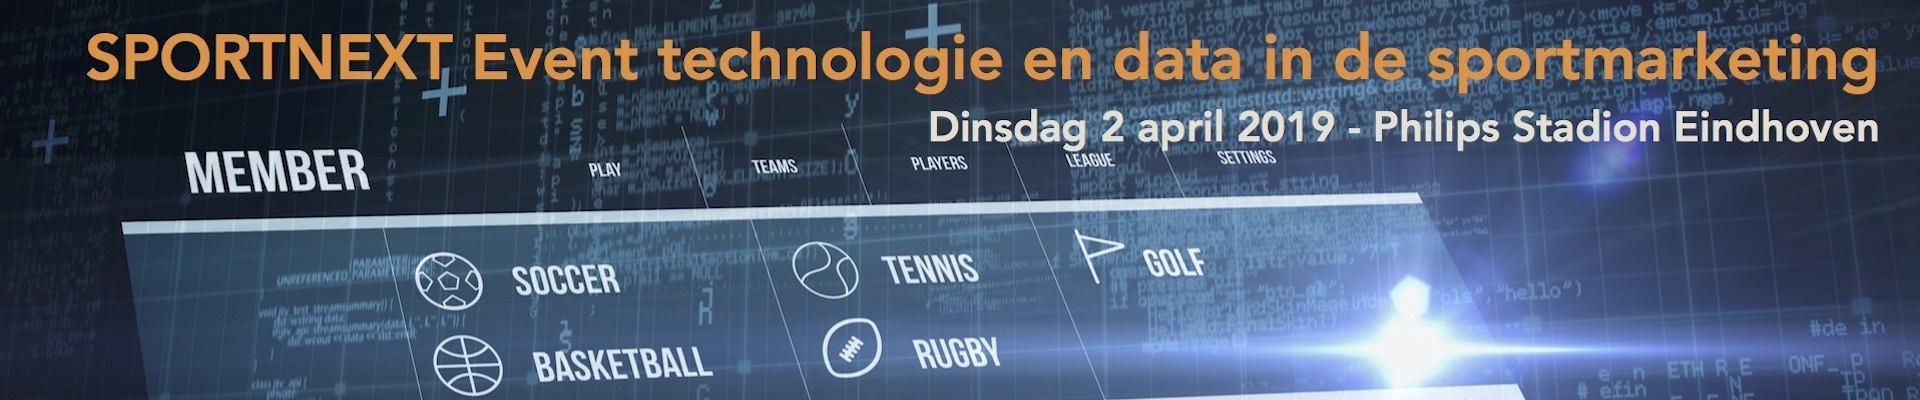 SPORTNEXT Event technologie en data in de sportmarketing